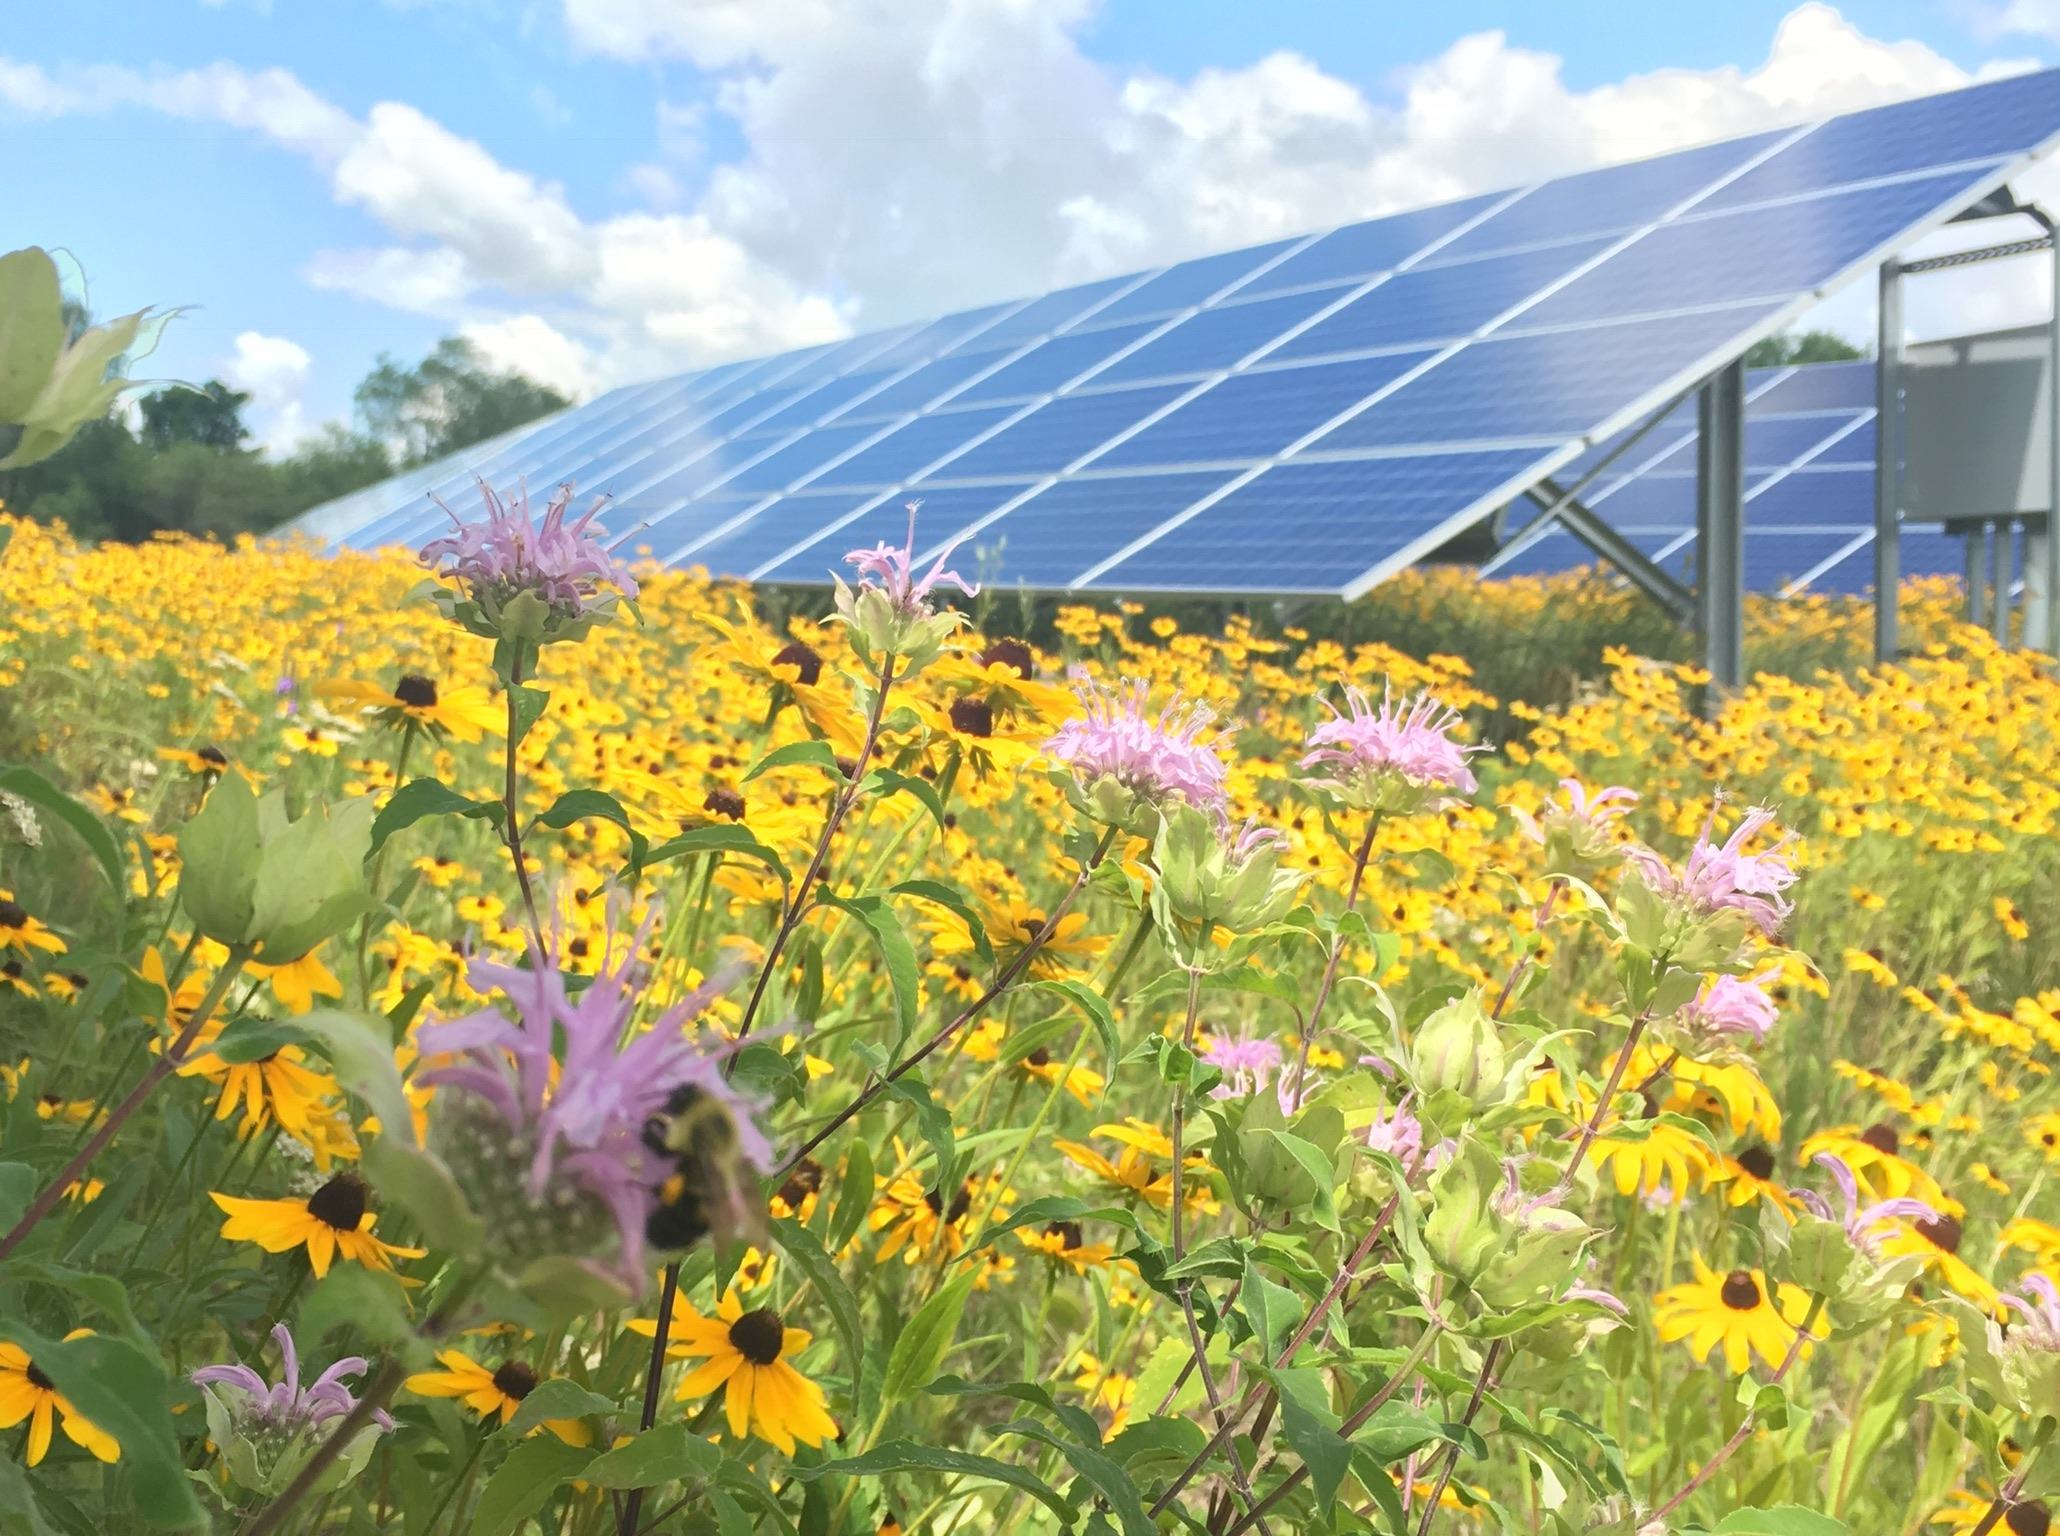 MARYLAND IS PAVING THE WAY FOR COMMERCIAL SOLAR POWER PLANTS TO BECOME POLLINATOR FRIENDLY -